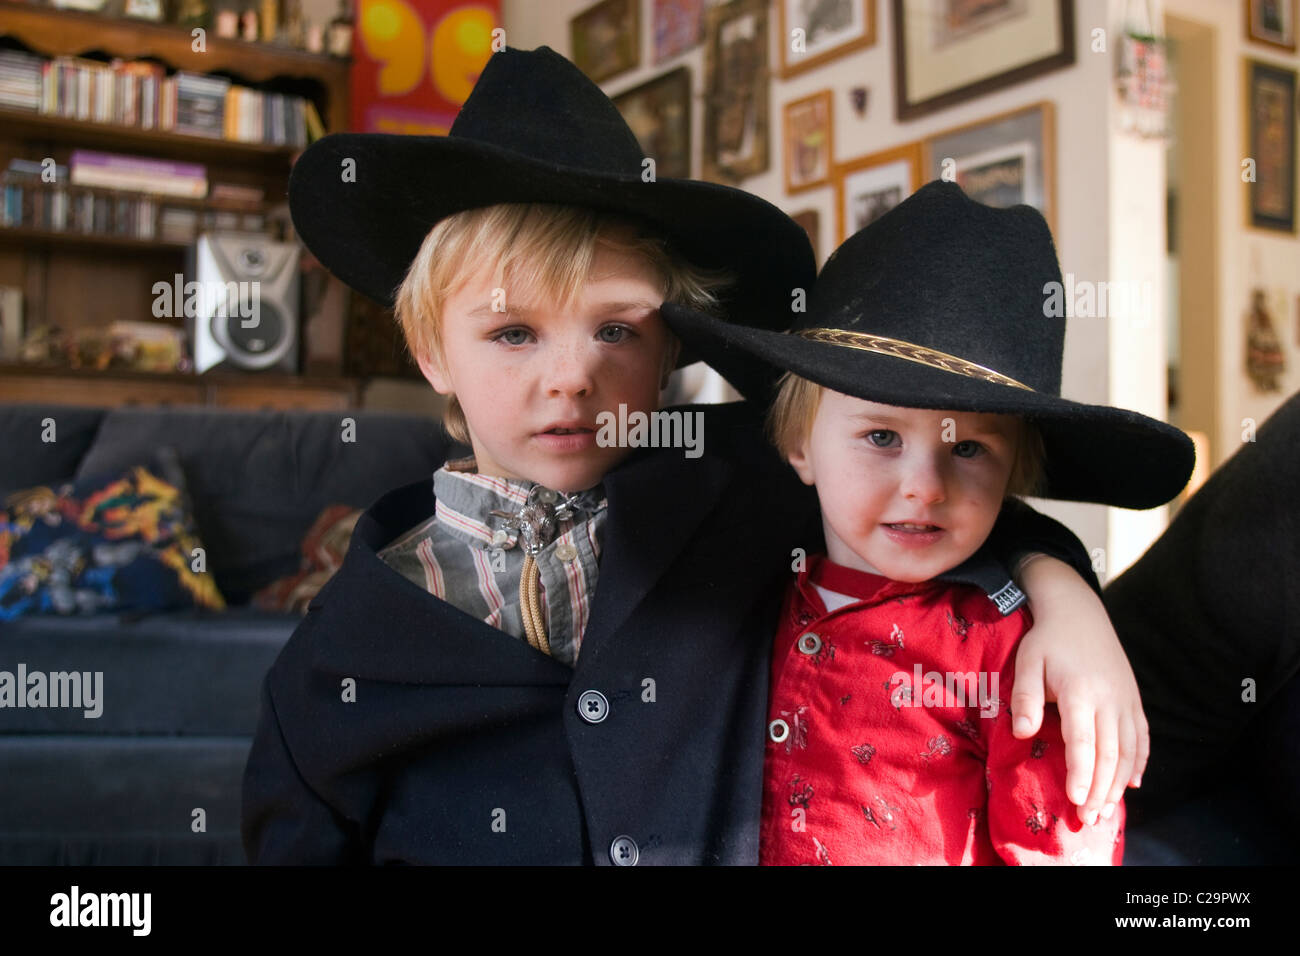 2 brothers playing and having fun. - Stock Image